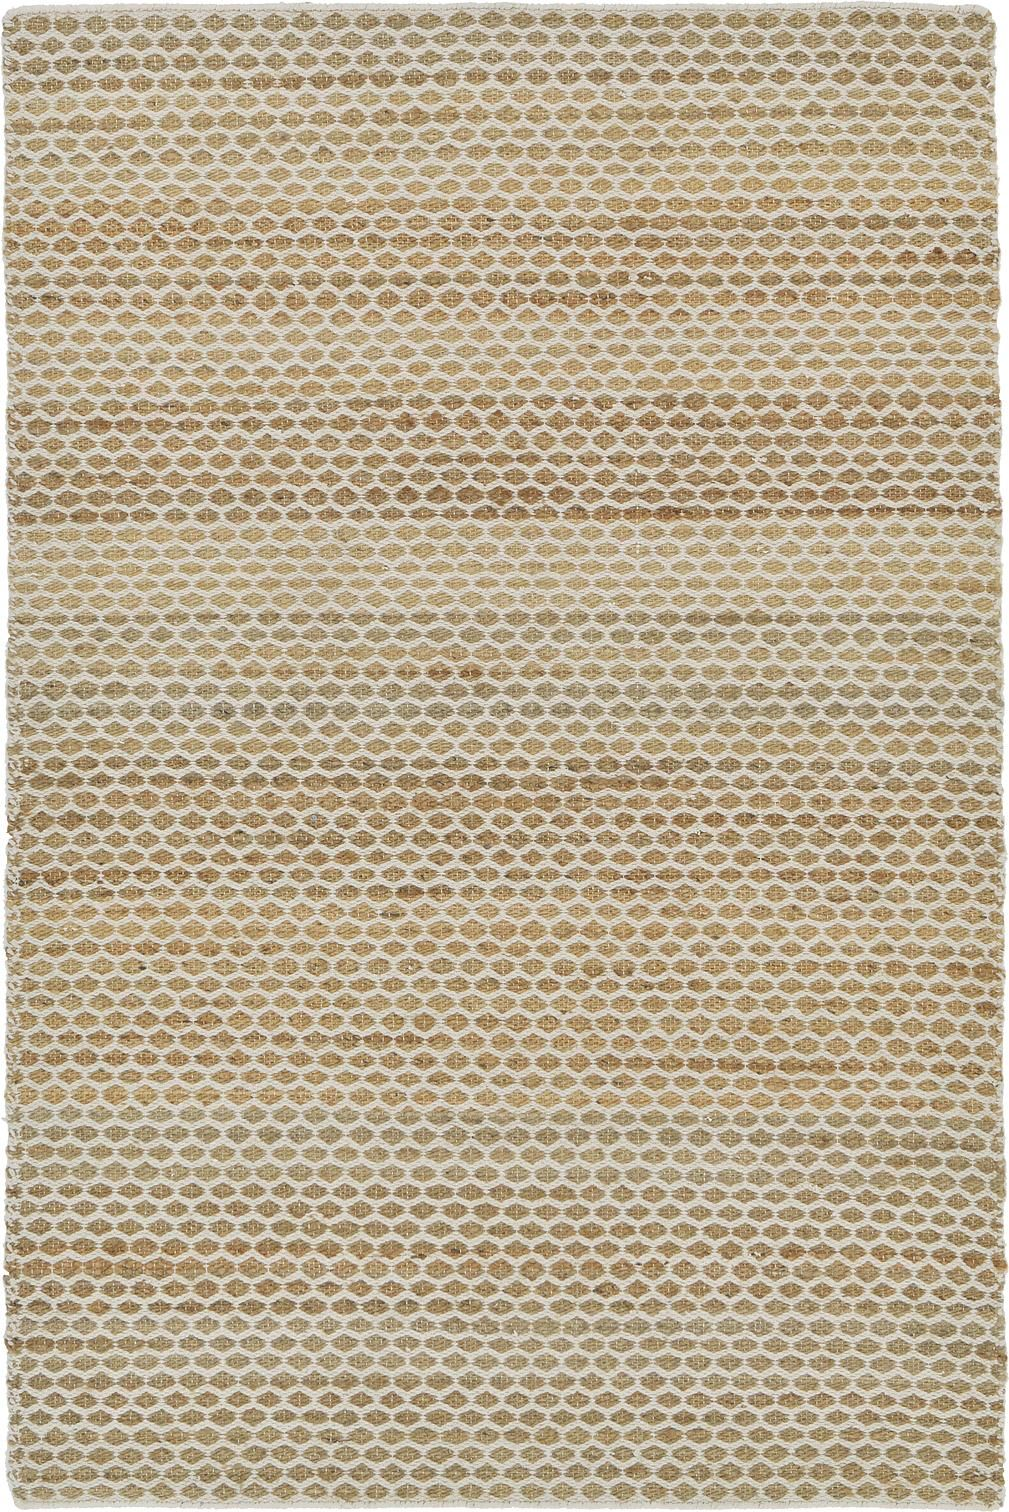 Light Brown 120cm x 178cm Jute Rug | Area Rugs | Rugs.ca